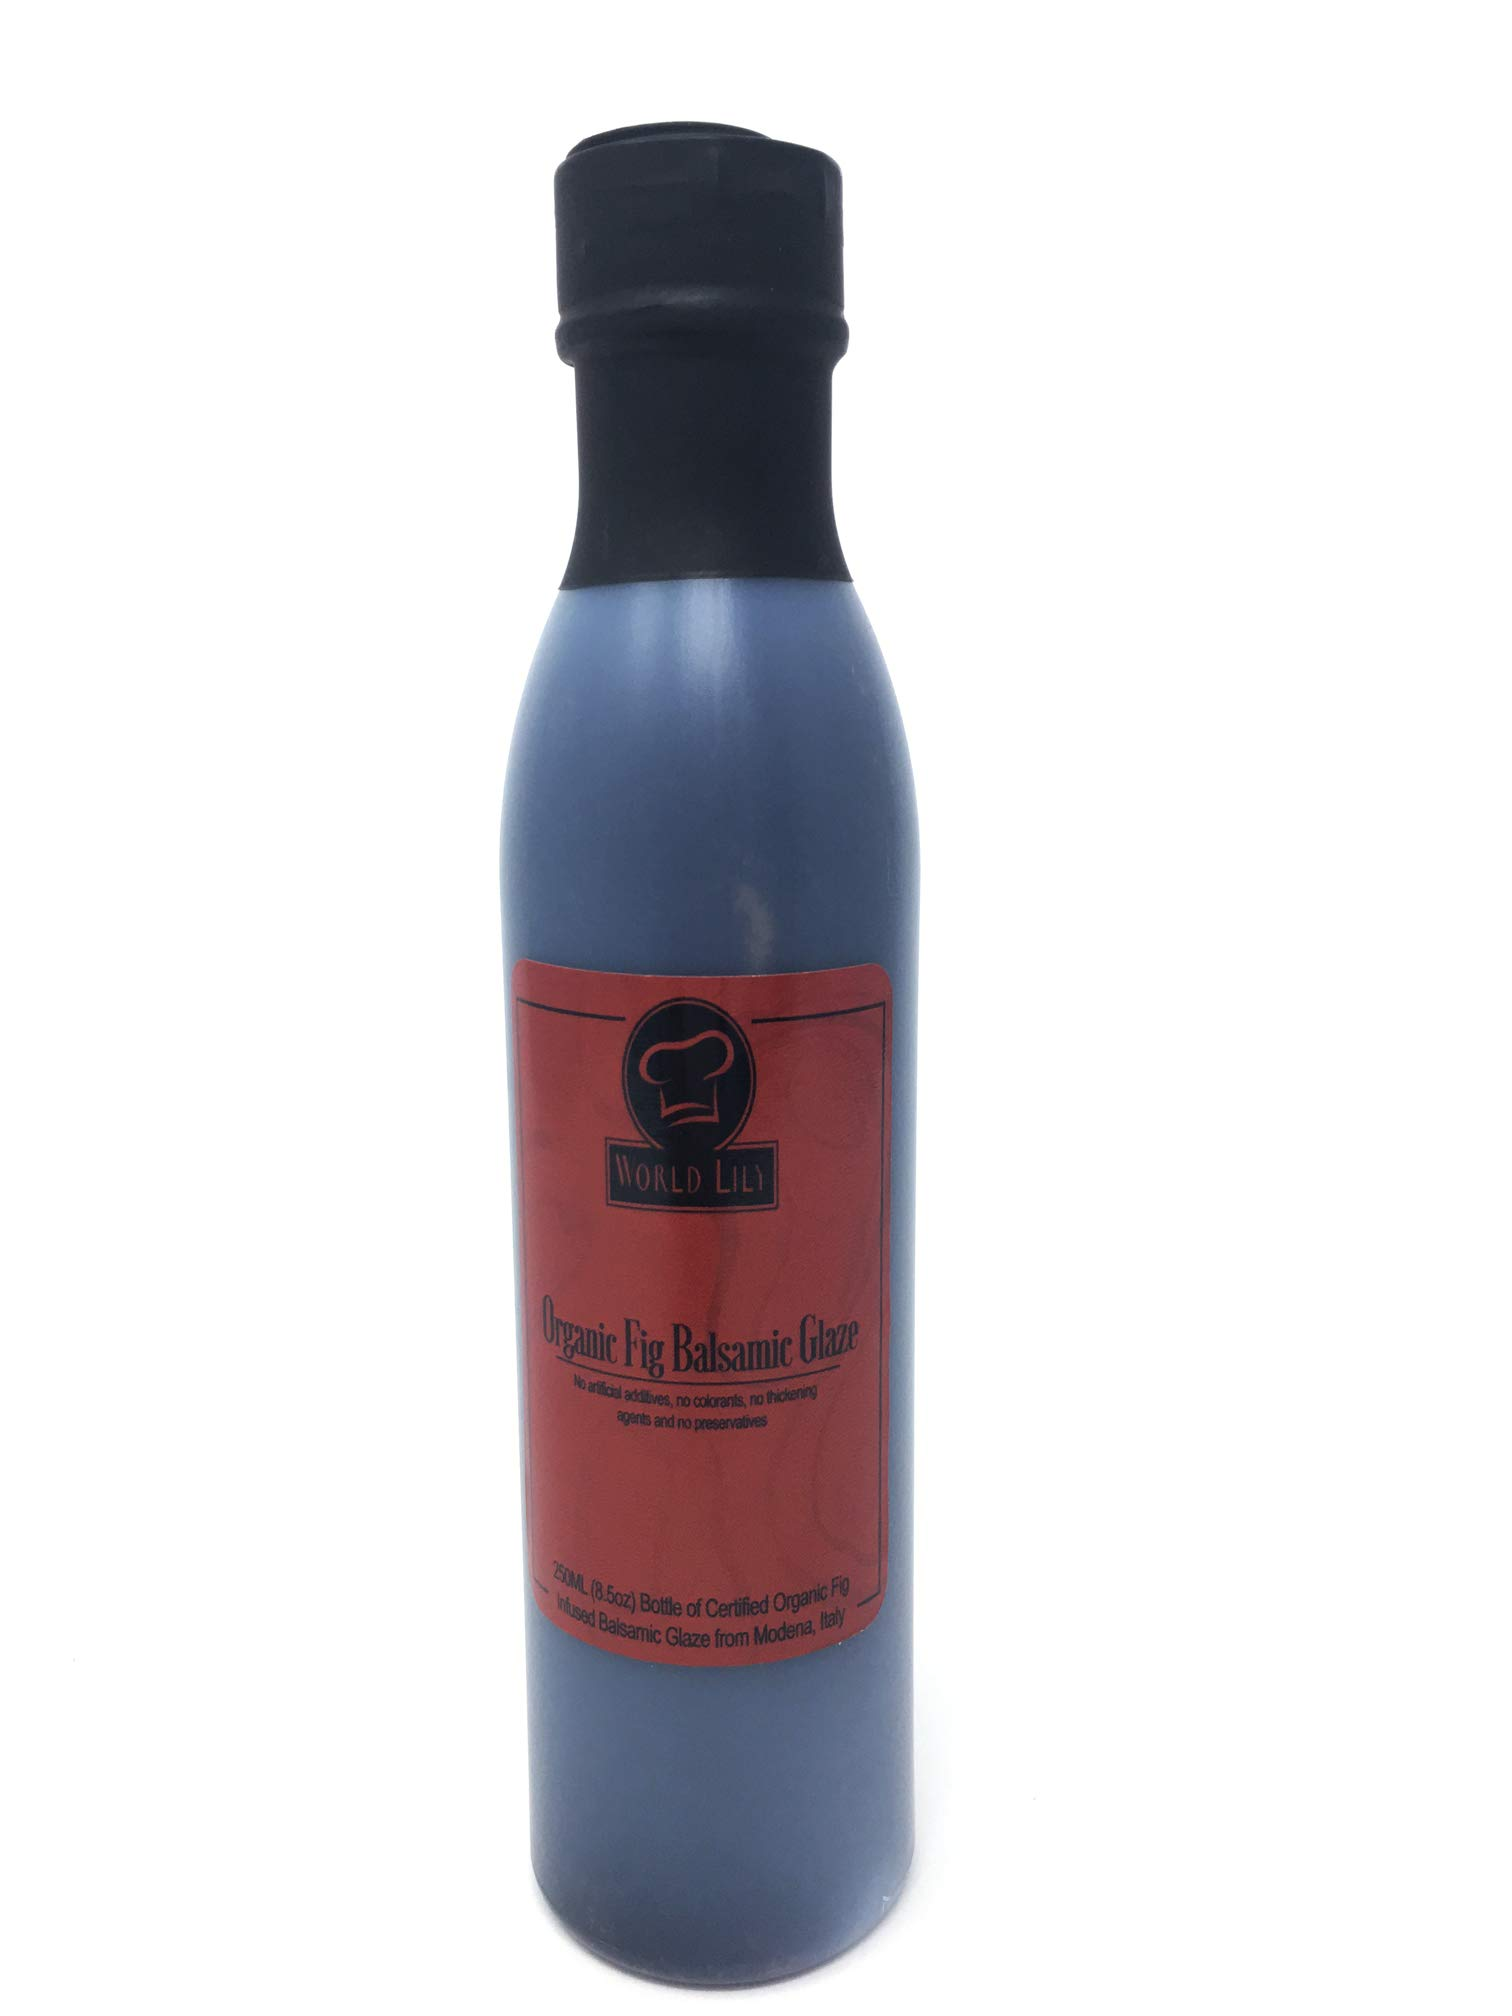 Organic Fig Balsamic Glaze 8.5 oz. from Modena, Italy 1 Organic Balsamic Glaze from Modena, Italy 100% Natural: No artificial additives, no colorants, no thickening agents and no preservatives. Delicious Fig Infused Flavor